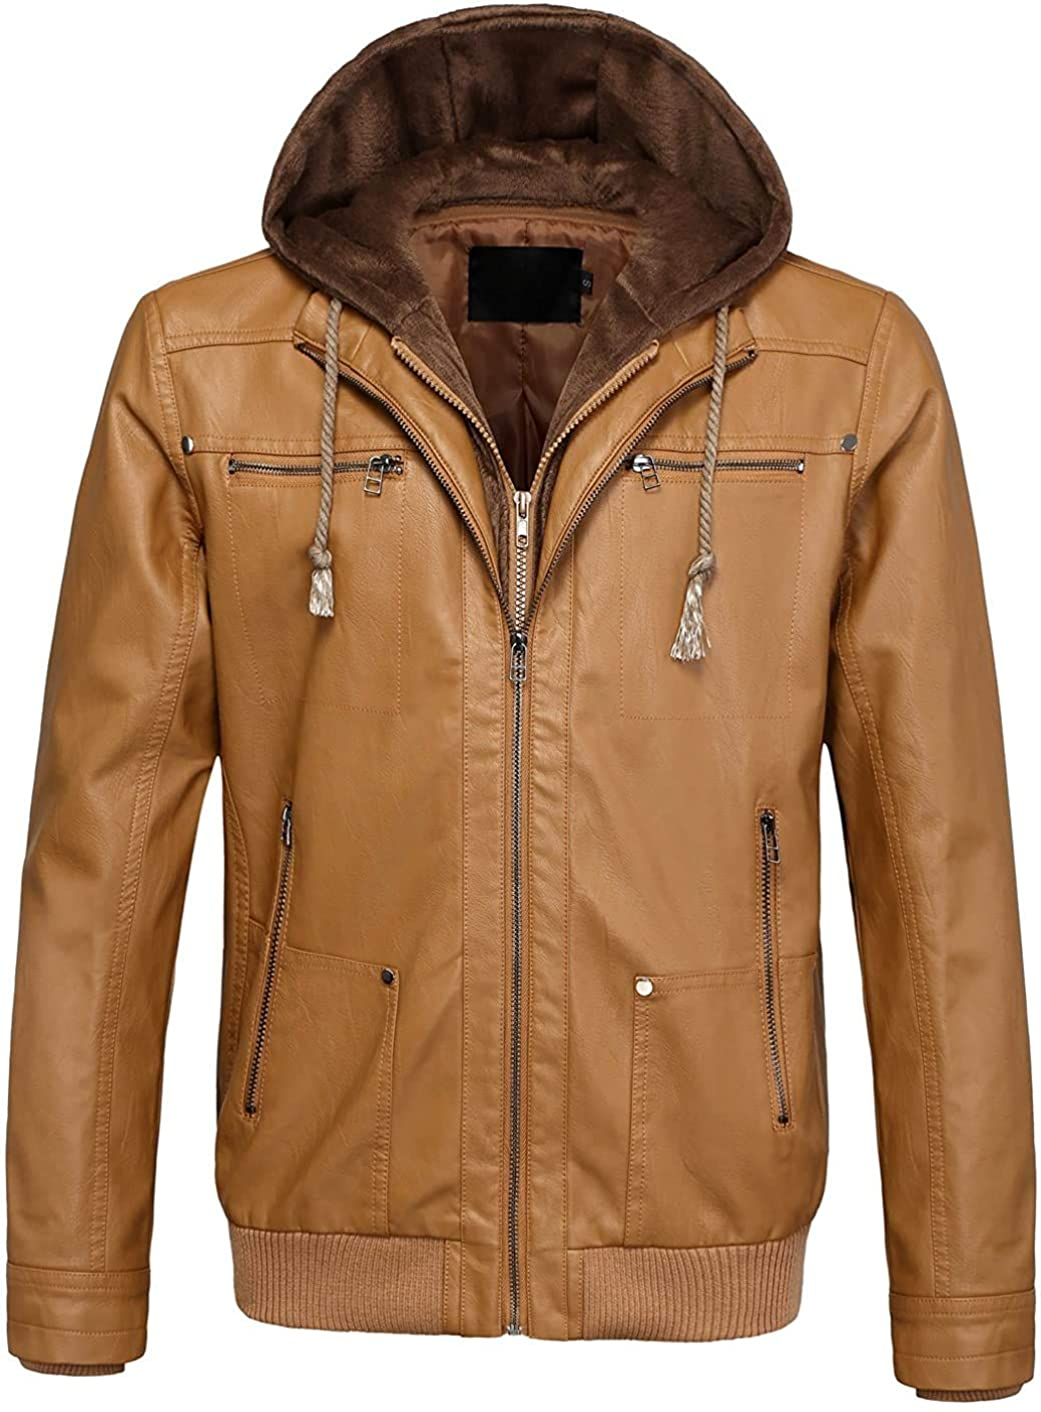 Gsdgjgg Men's Casual Removable Fleece Hooded Zip-Up Faux Leather Moto Bomber Jacket